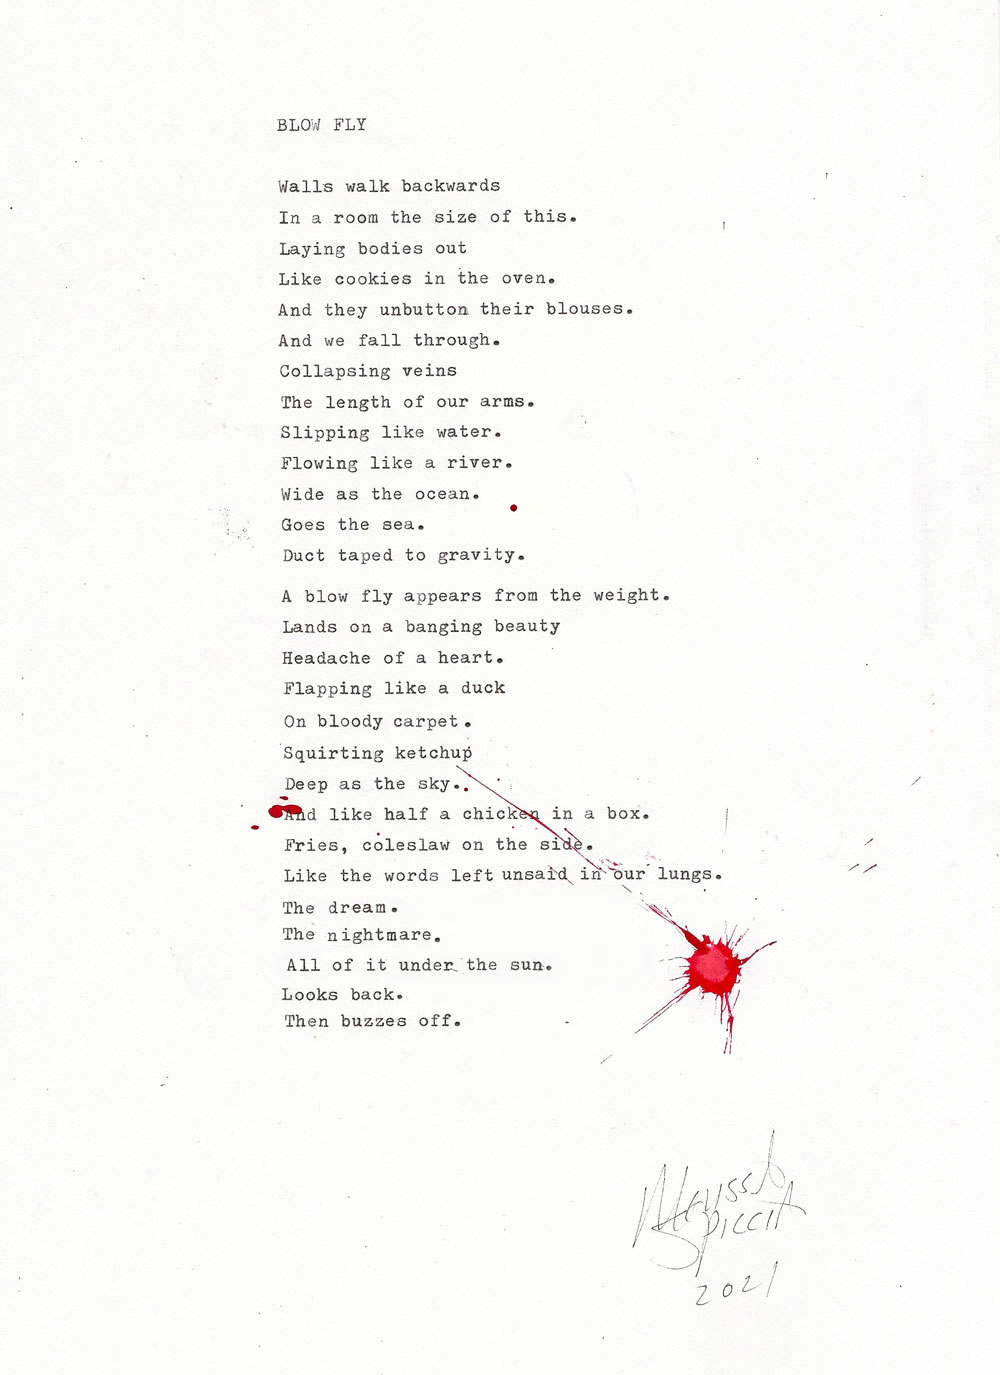 Melissa Spiccia | SEE FLOWERS IN HELL BLOW FLY POEM MELISSA SPICCIA